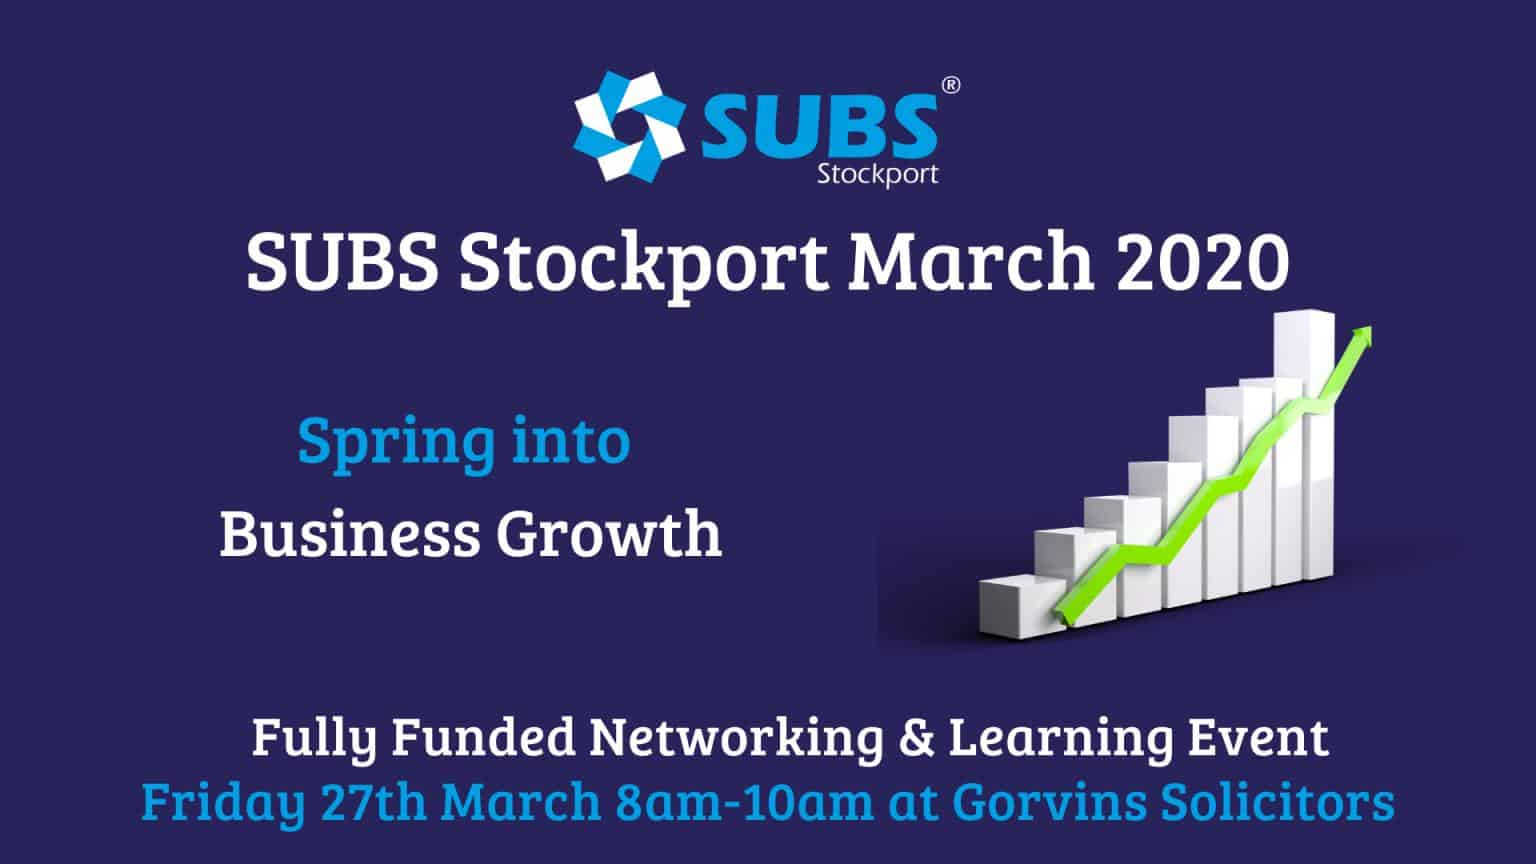 SUBS Stockport March 2020